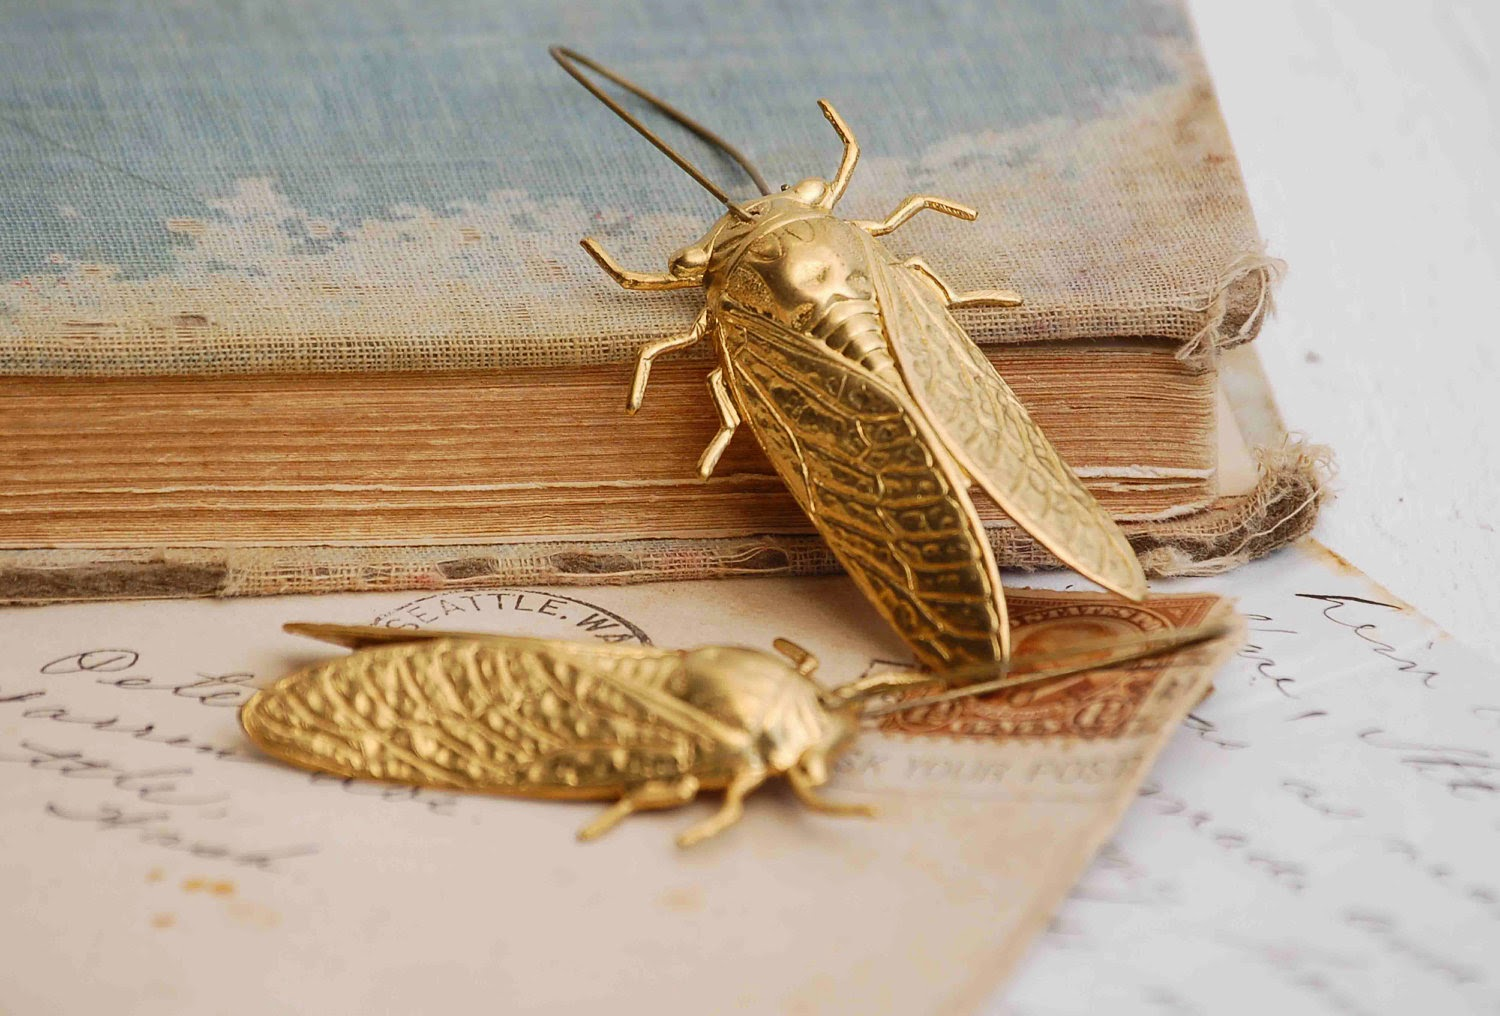 https://www.etsy.com/listing/109846198/big-gold-beetle-earrings-nature-study?ref=shop_home_active_6&ga_search_query=beetle